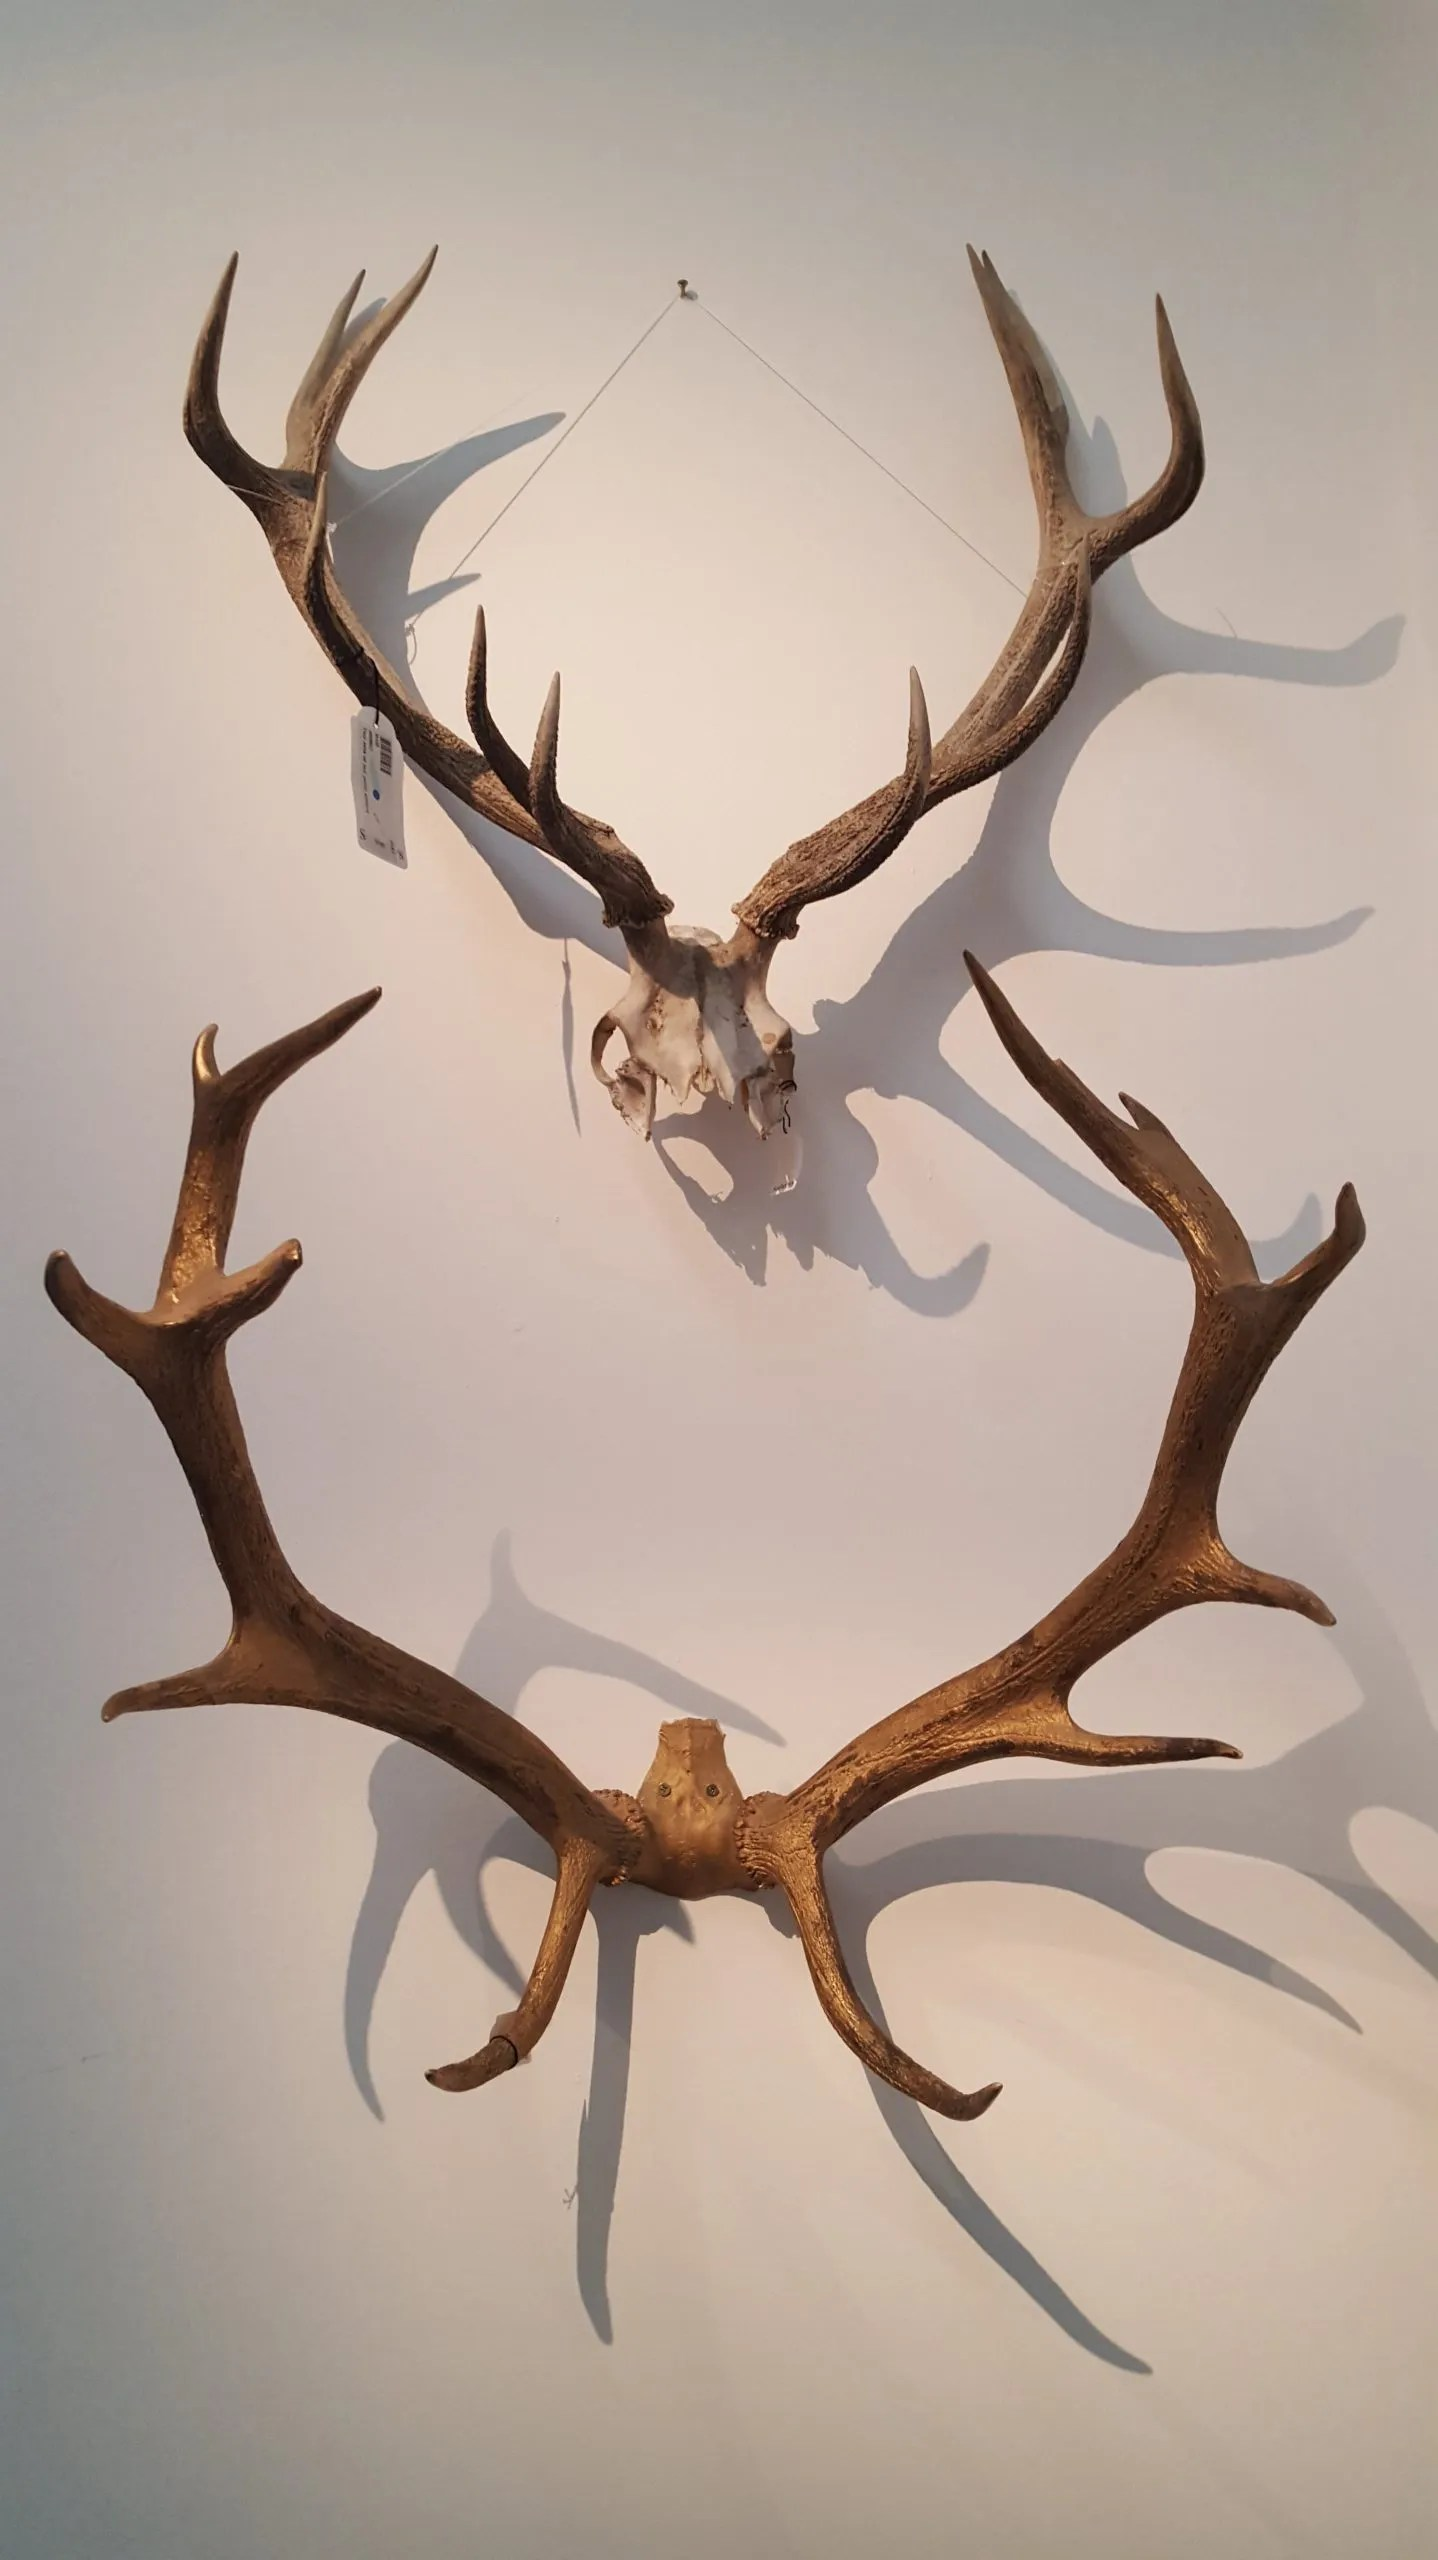 Duchess of Devonshire antlers